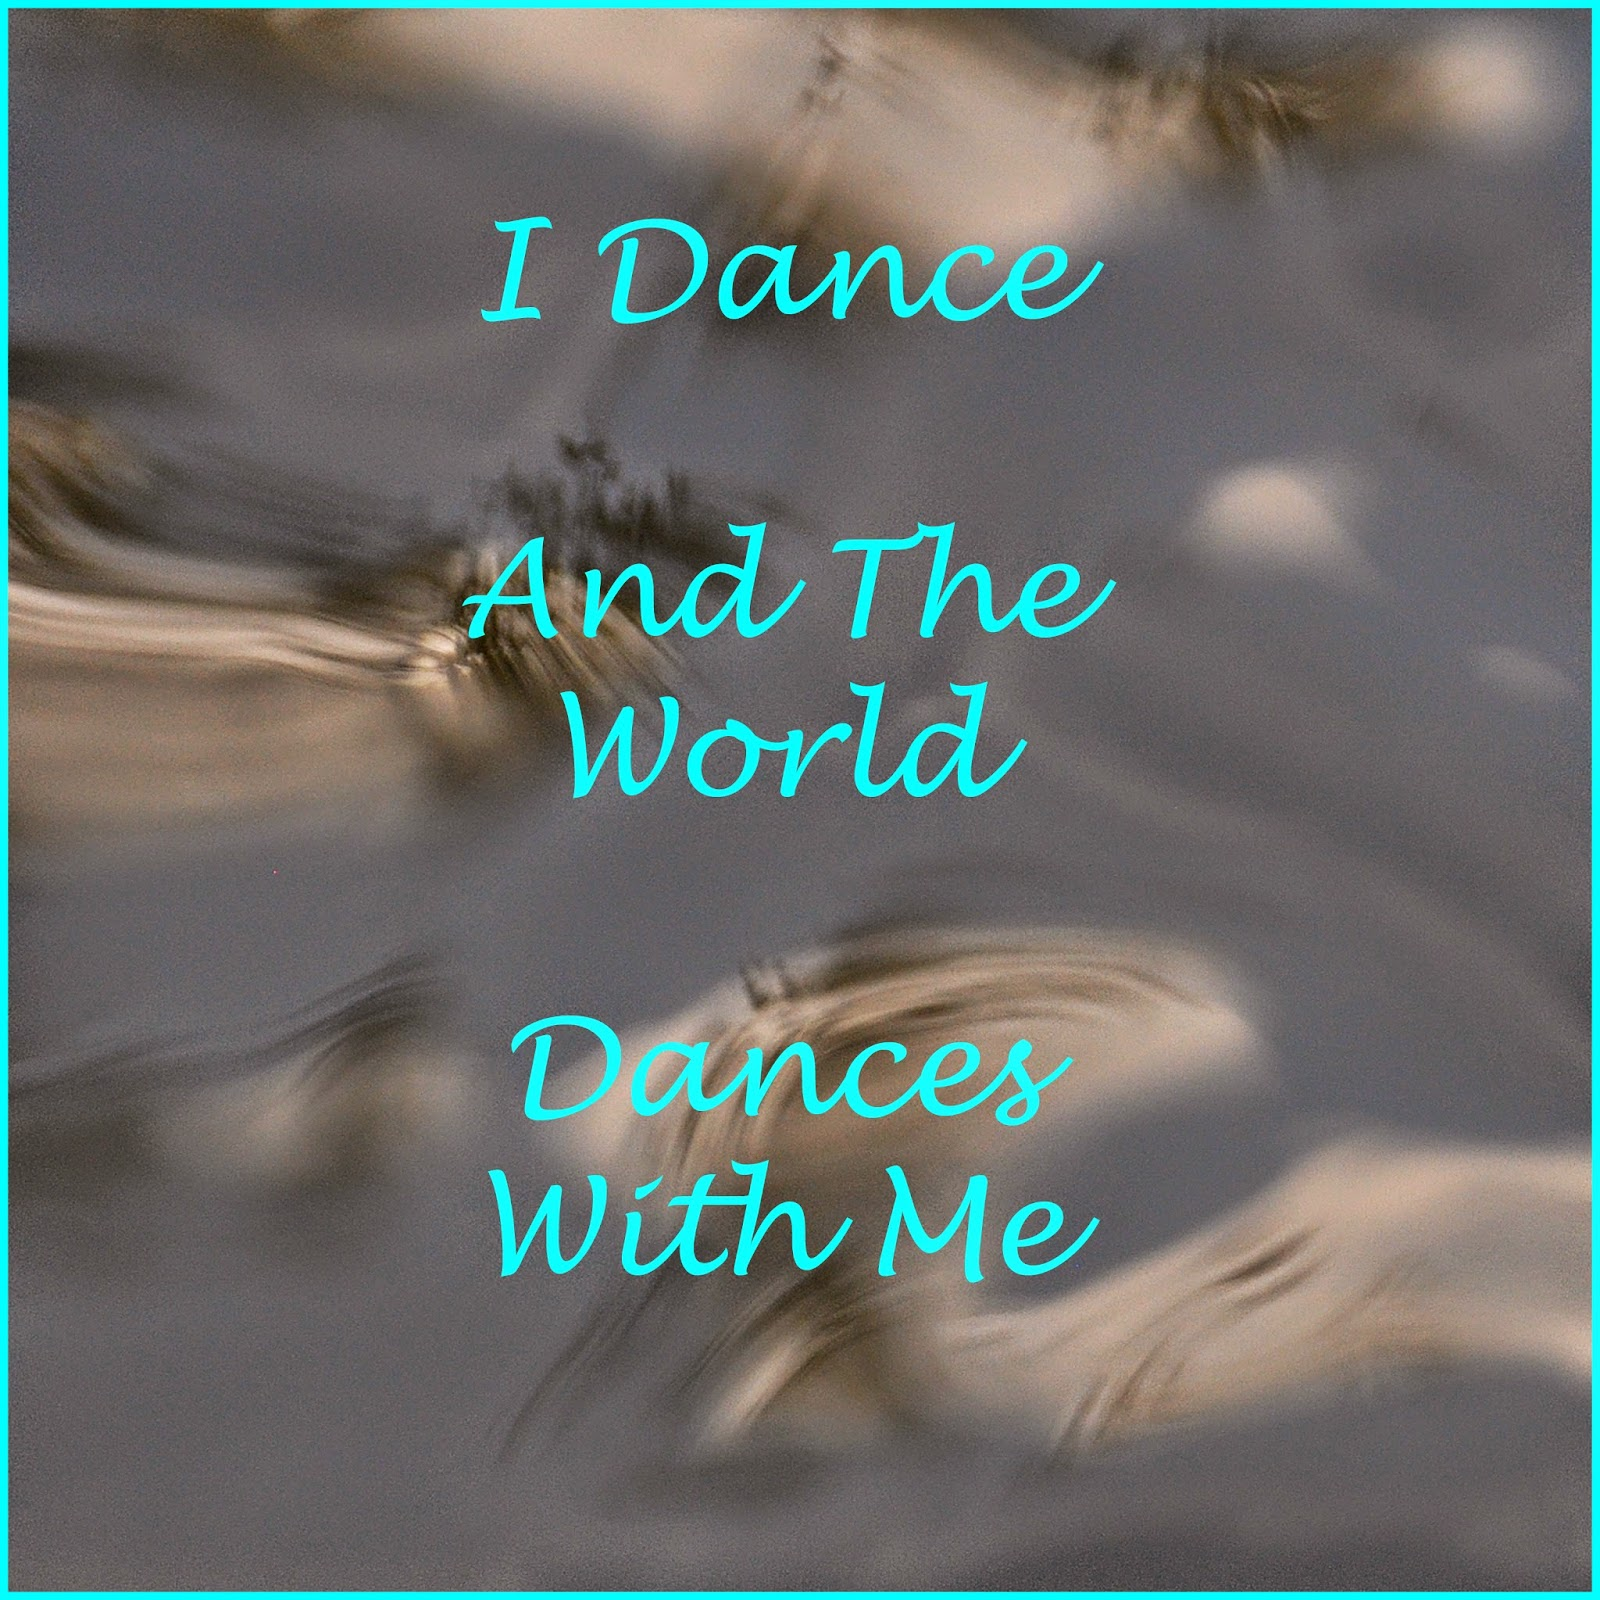 I dance and the world dances with me affirmation card